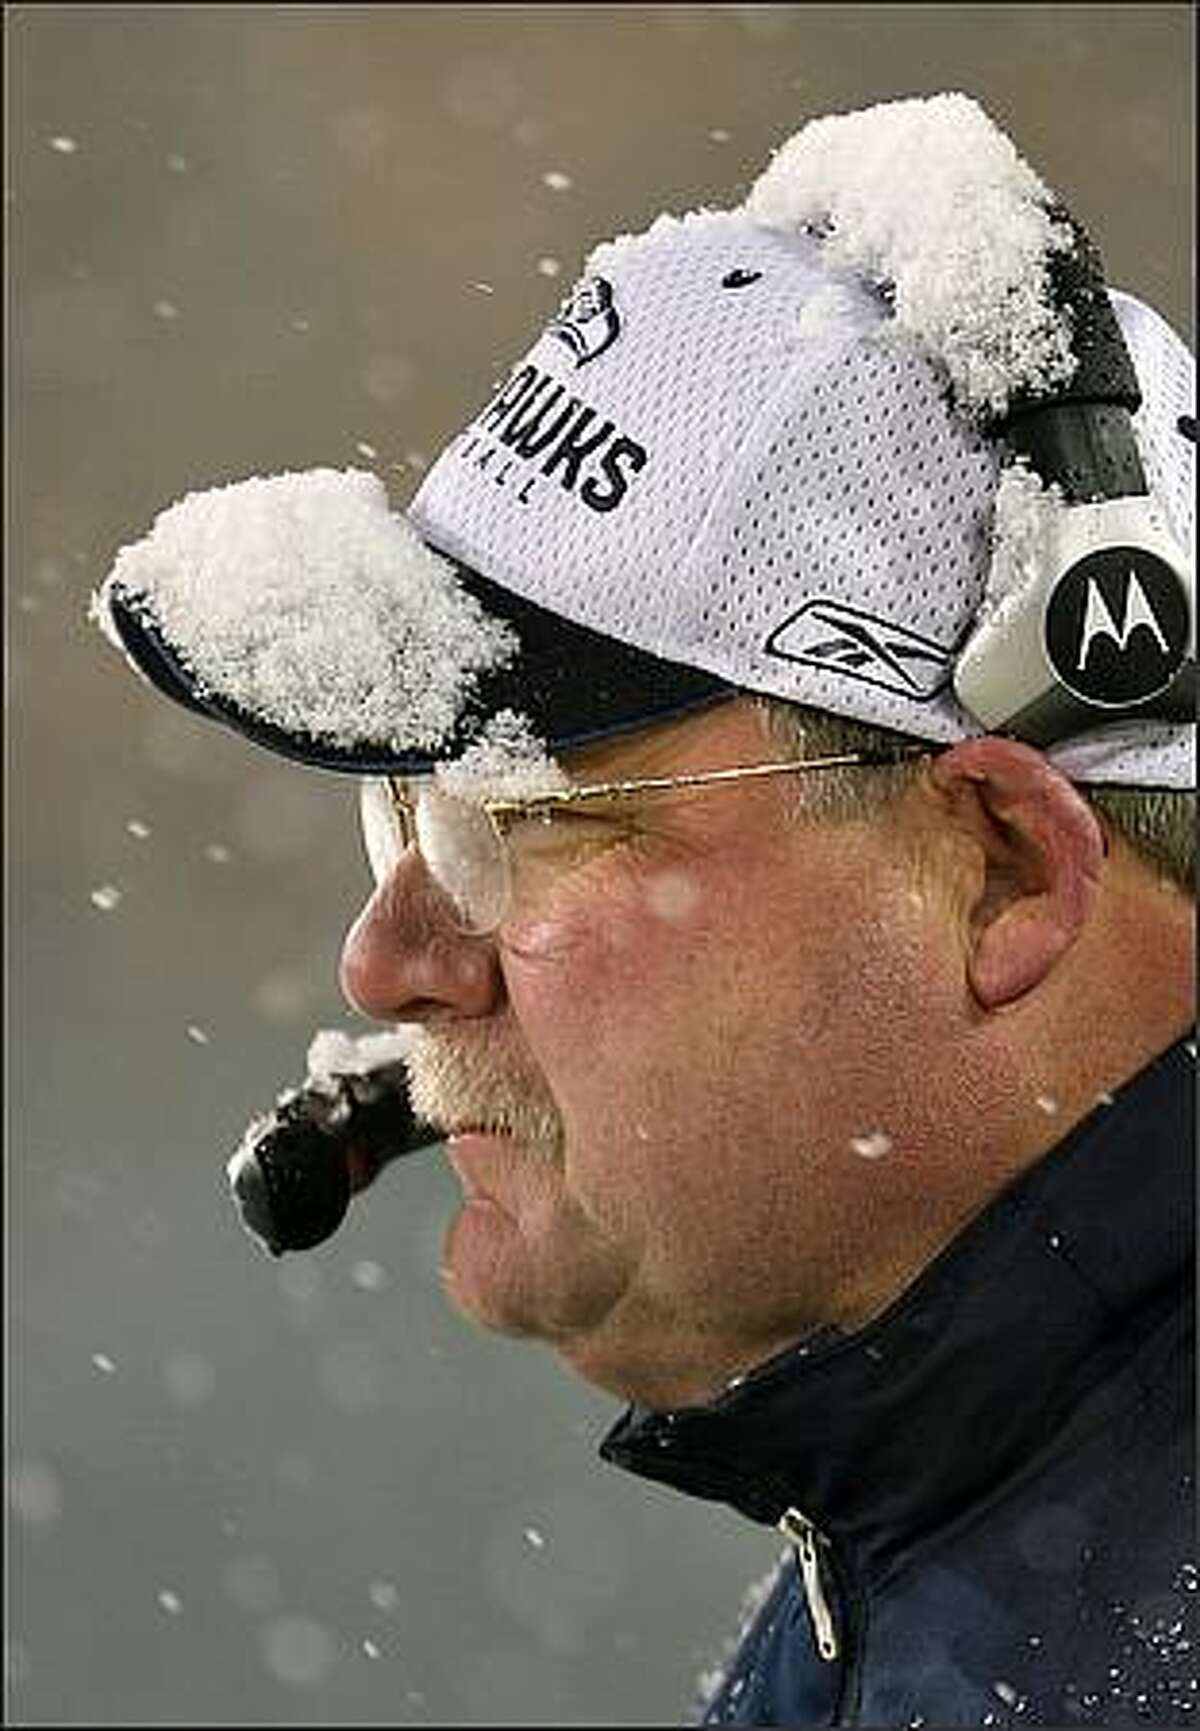 Seattle Seahawks head coach Mike Holmgren watches the final monets of the fourth quarter fade with a layer of snow on the brim of his cap and headphones as the Seahawks lose to the Green Bay Packers at Lambeau Field in Green Bay, Wisconsin., Saturday. Jan. 12, 2007. (Seattle Post-Intelligencer/Mike Urban)